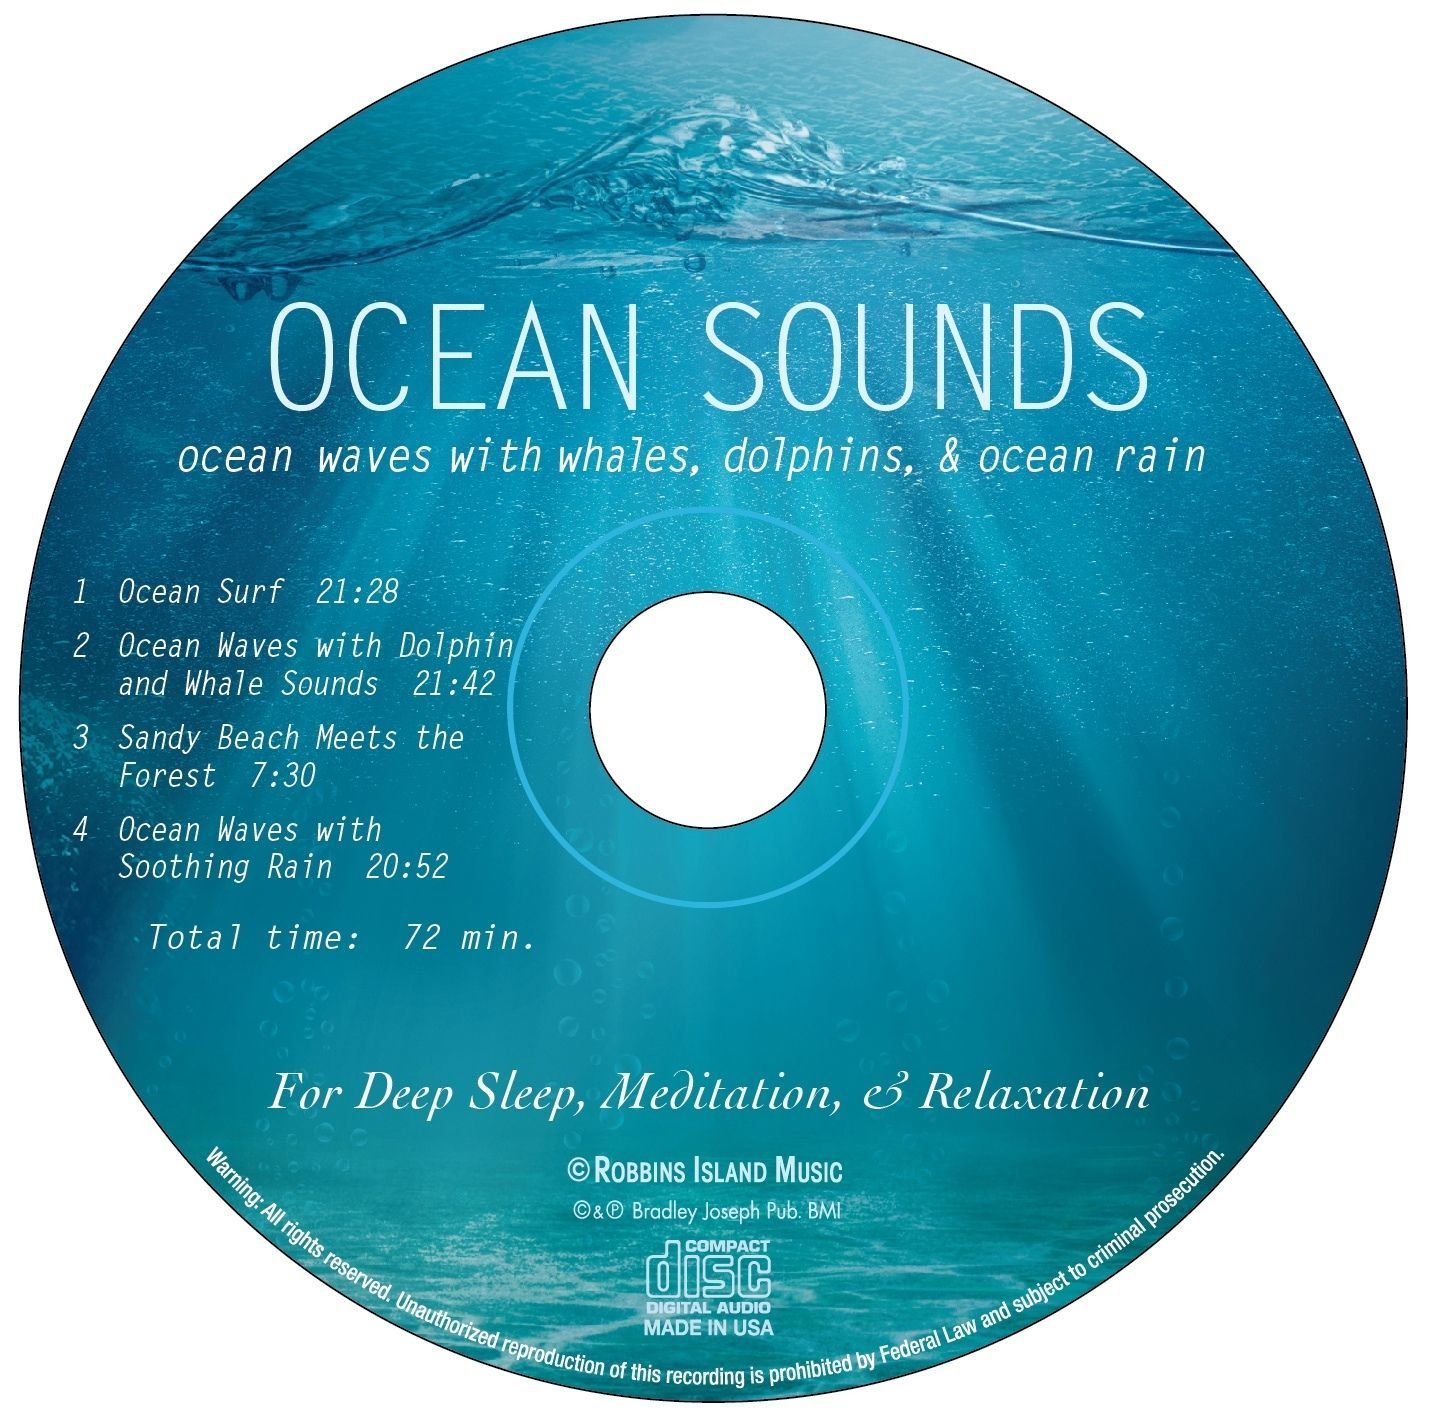 Ocean Waves With Whale & Dolphin Sounds: and 50 similar items